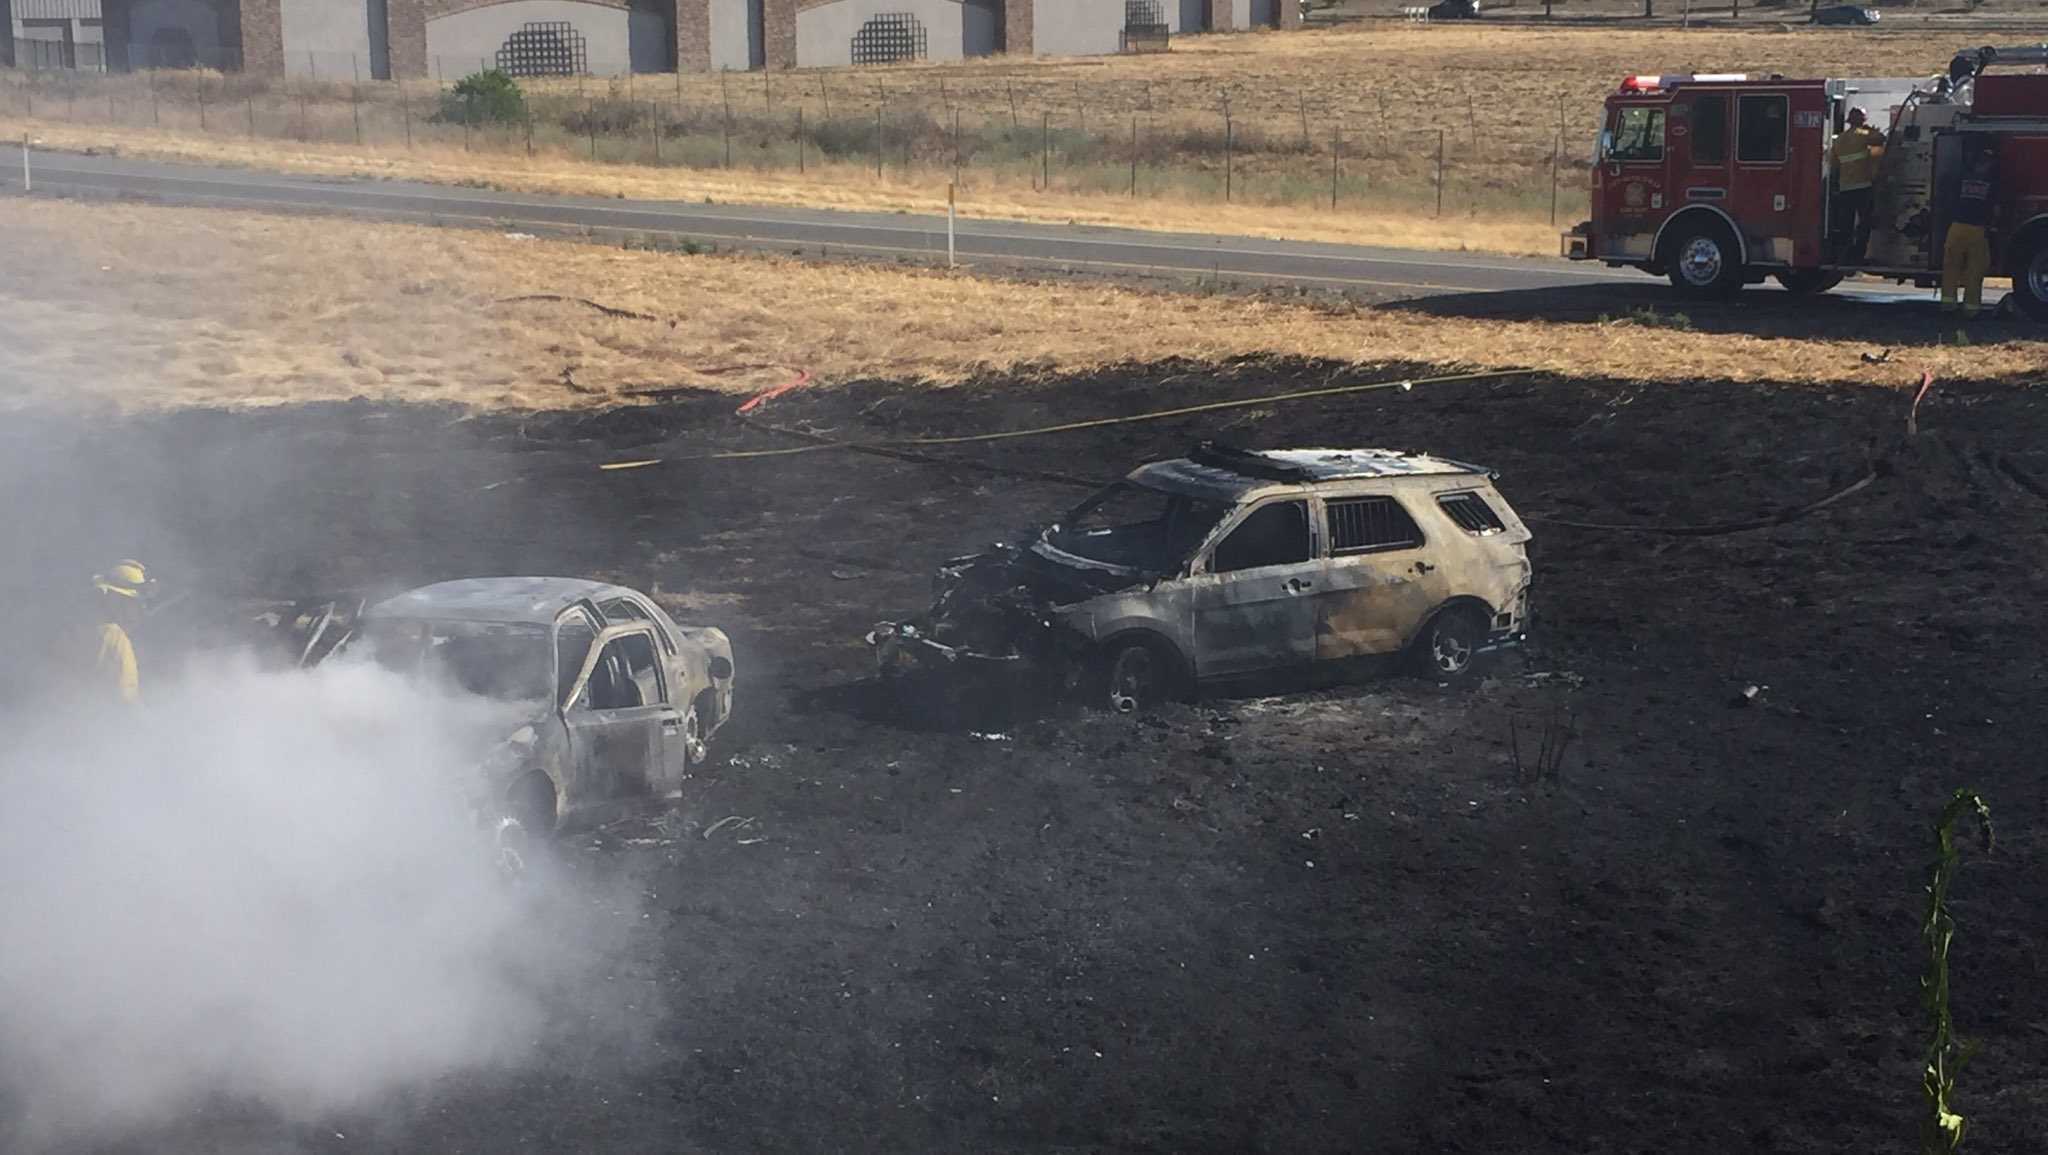 Firefighters work to contain a fire on Tuesday, June 20, 2017, after a police chase ended in a Vacaville field near Interstate 505, officials said.